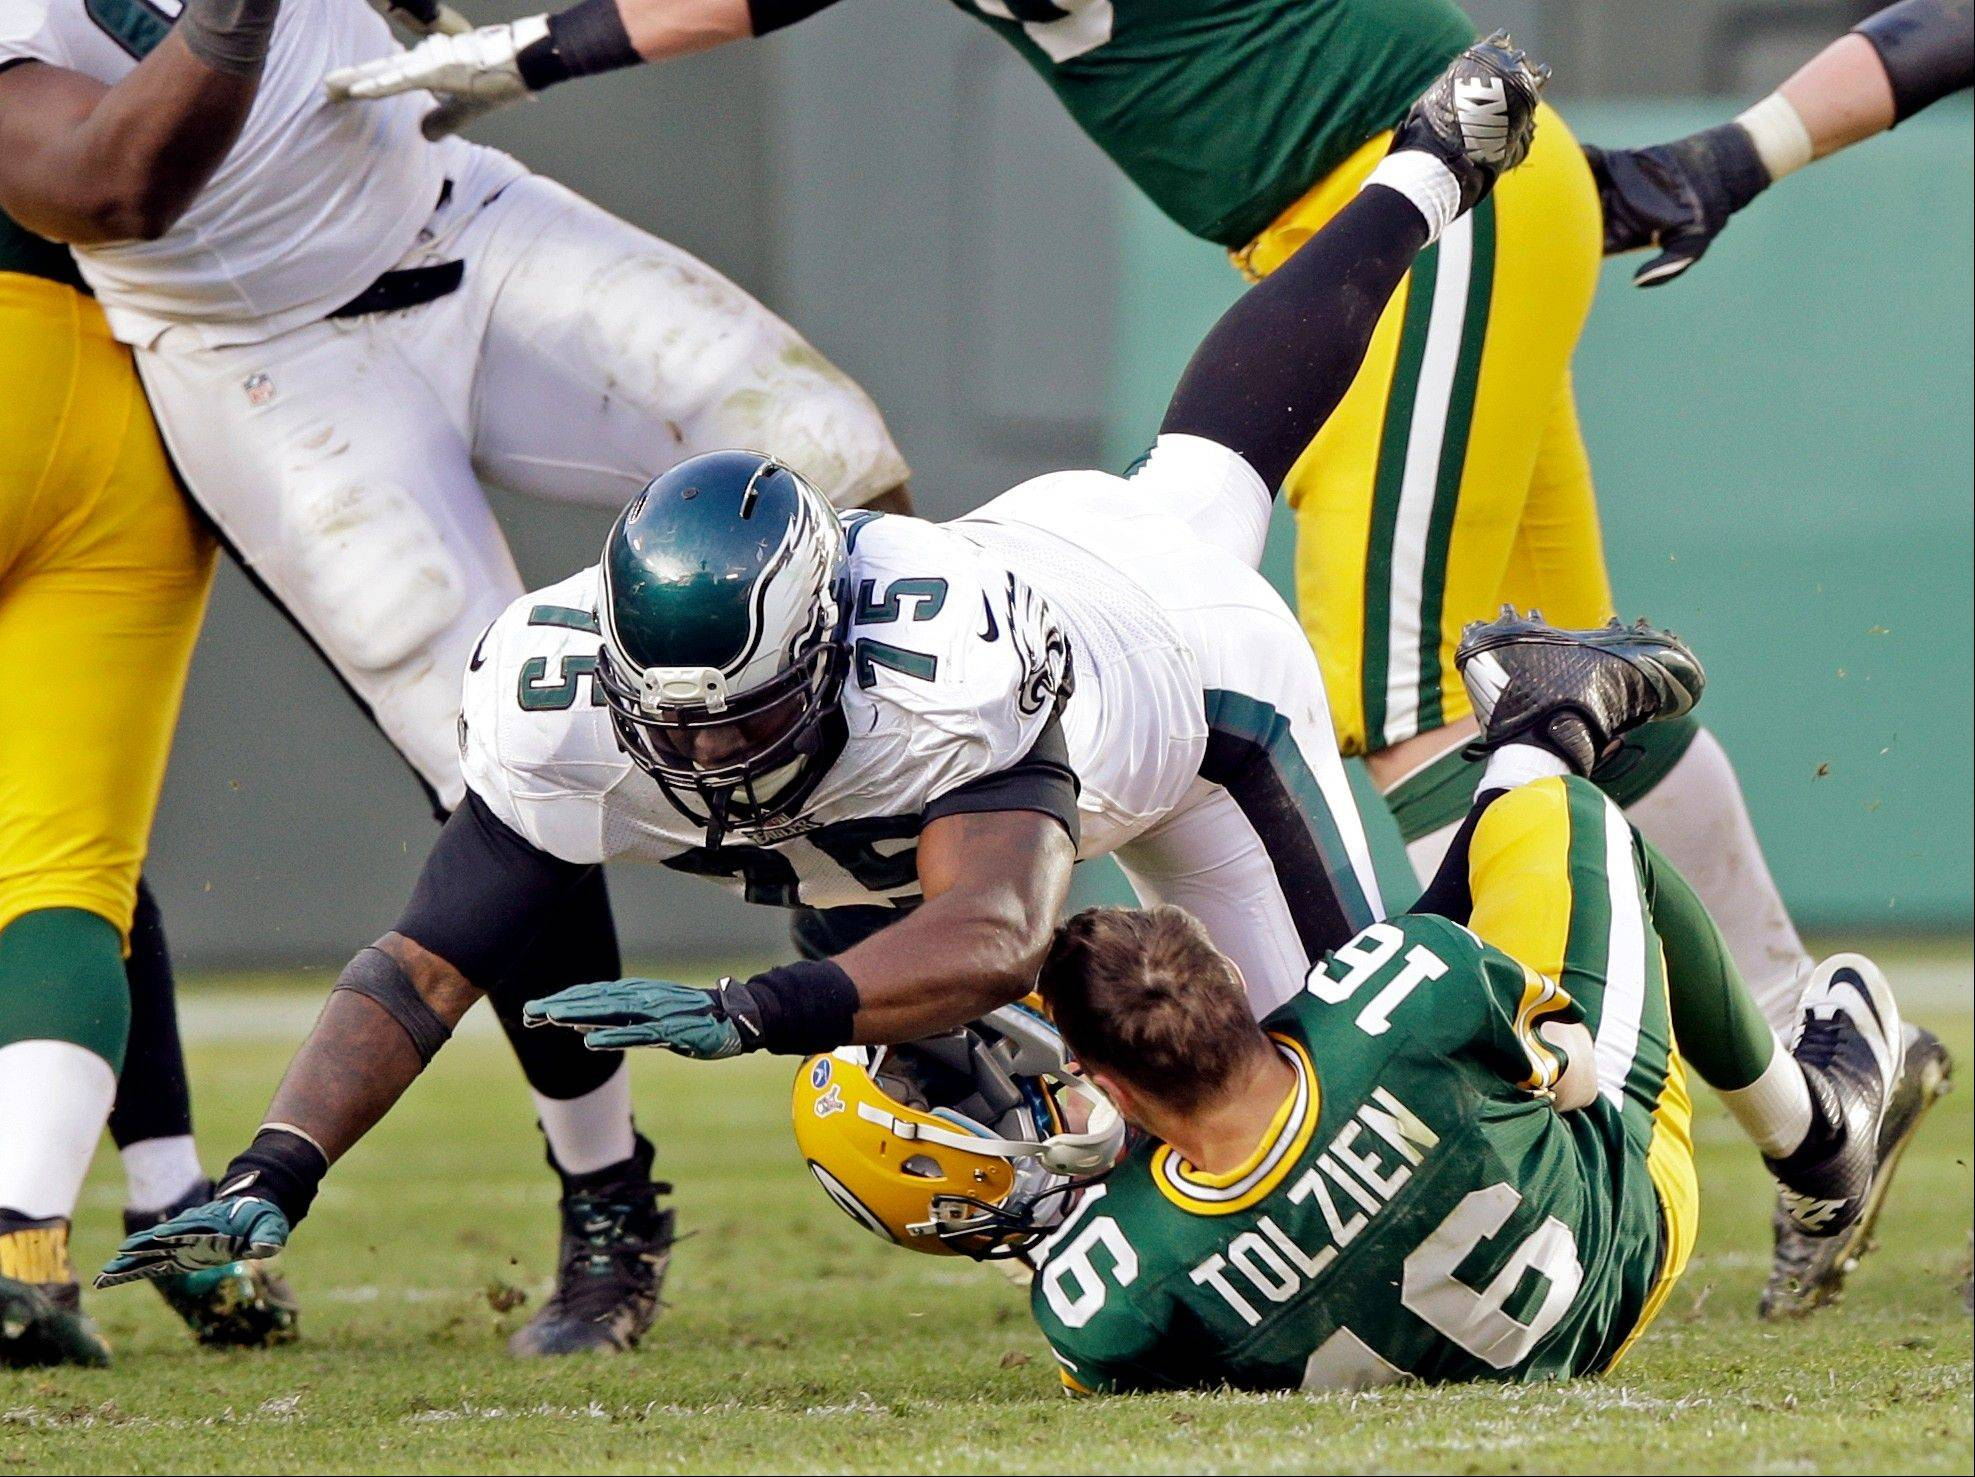 Green Bay Packers quarterback Scott Tolzien loses his helmet as he is sacked by Philadelphia Eagles� Vinny Curry during the second half of an NFL football game Sunday, Nov. 10, 2013, in Green Bay, Wis.